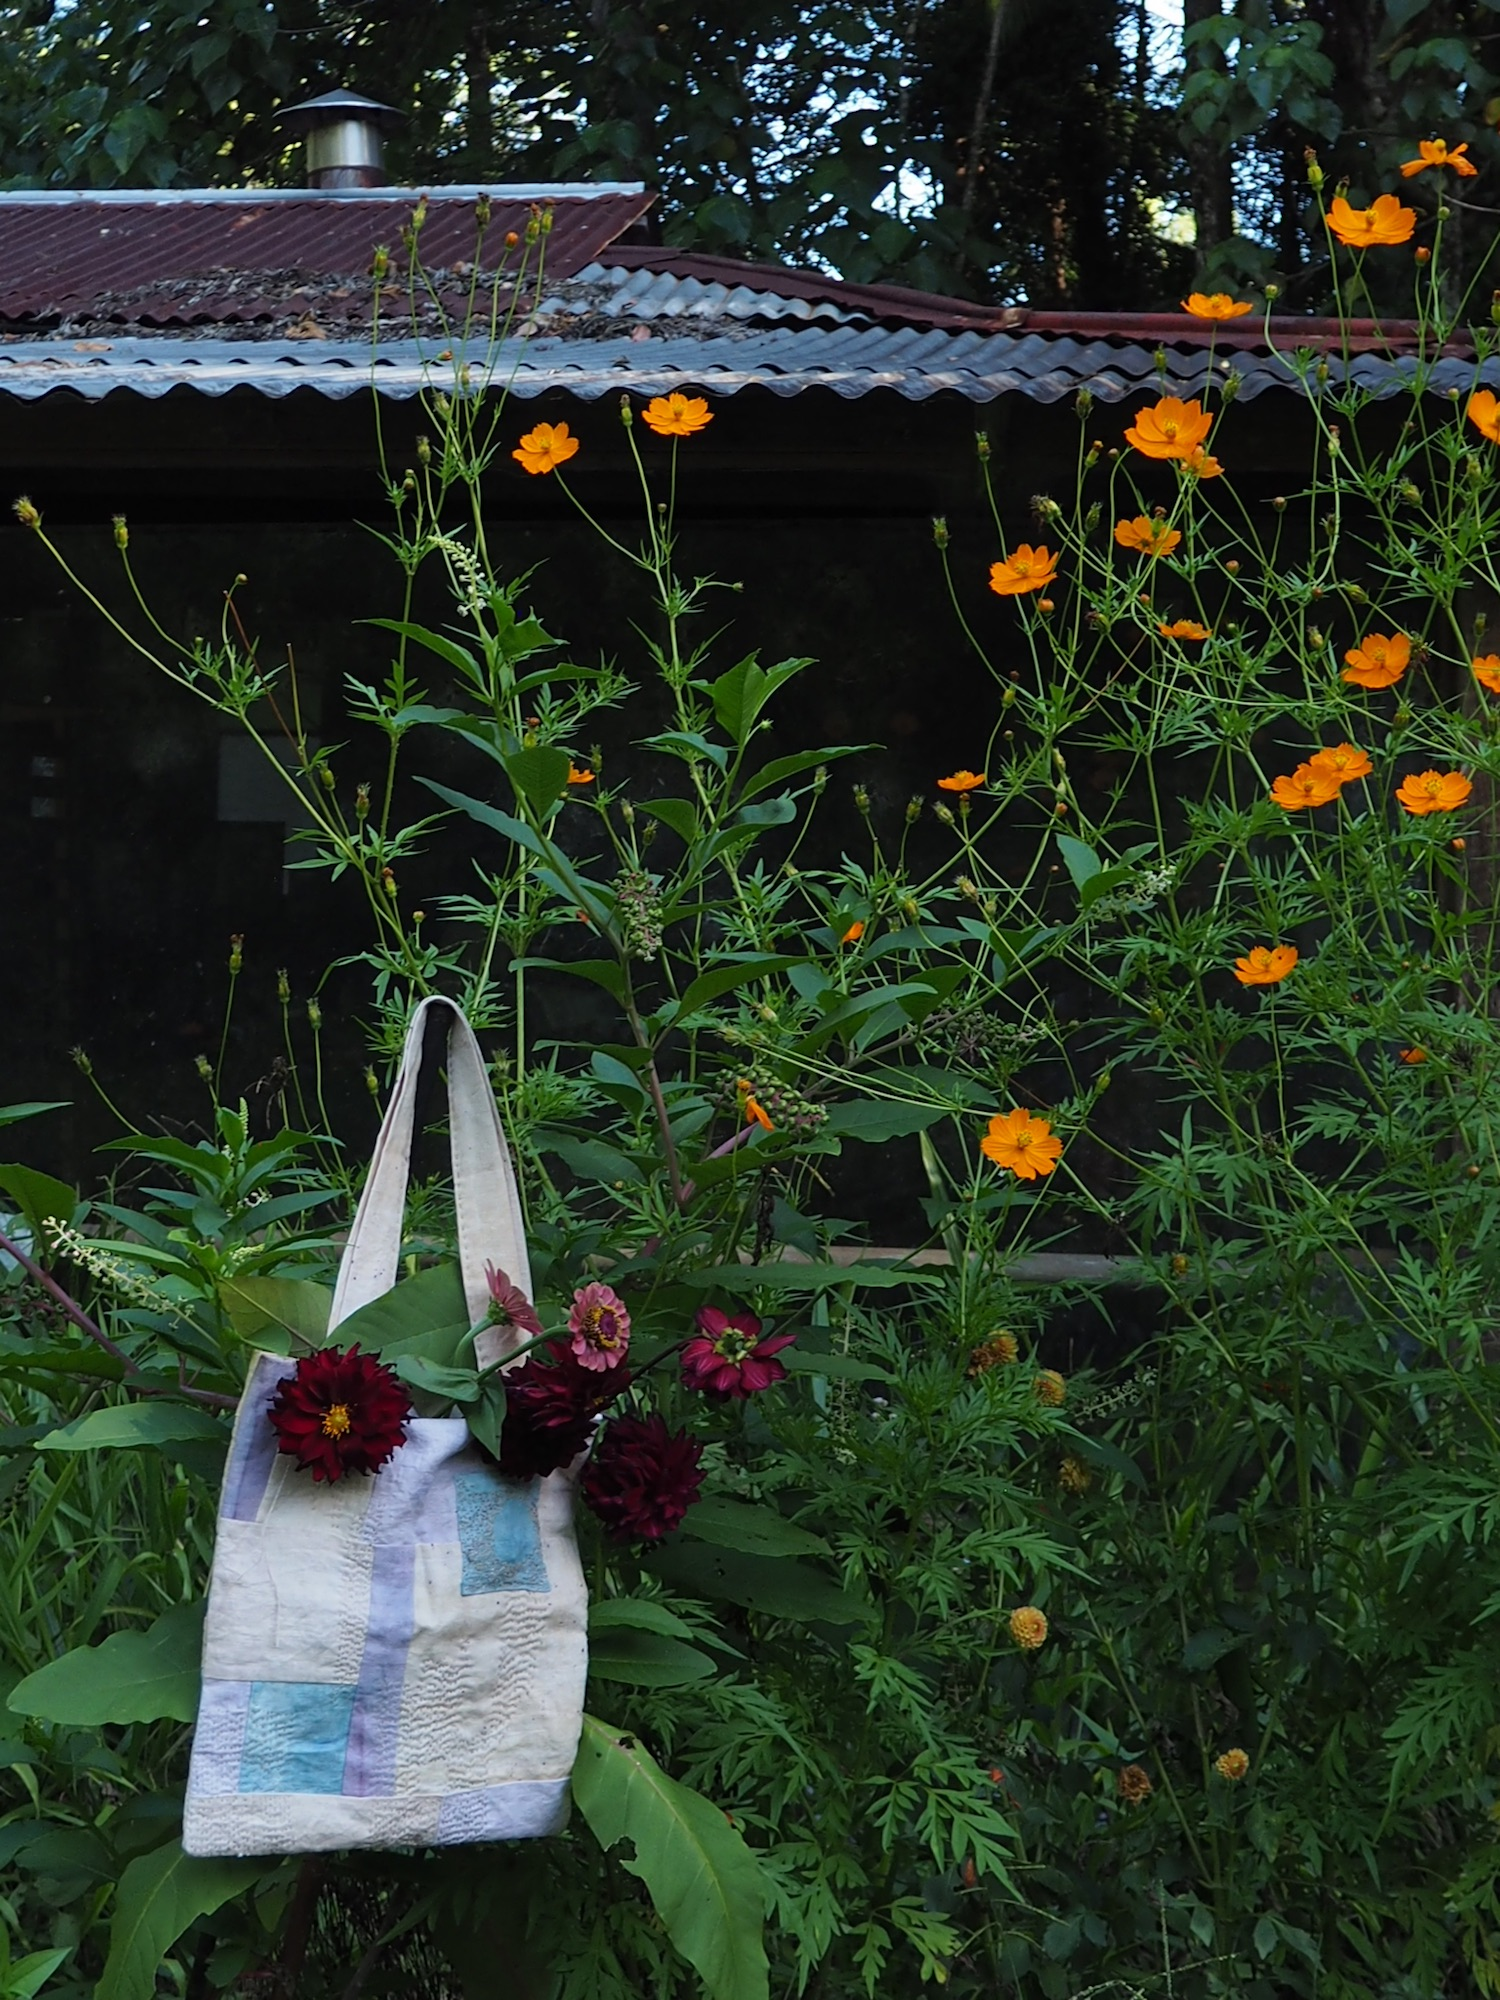 Naturally dyed tote bag in the garden -January 2019 Ellie Beck.jpg